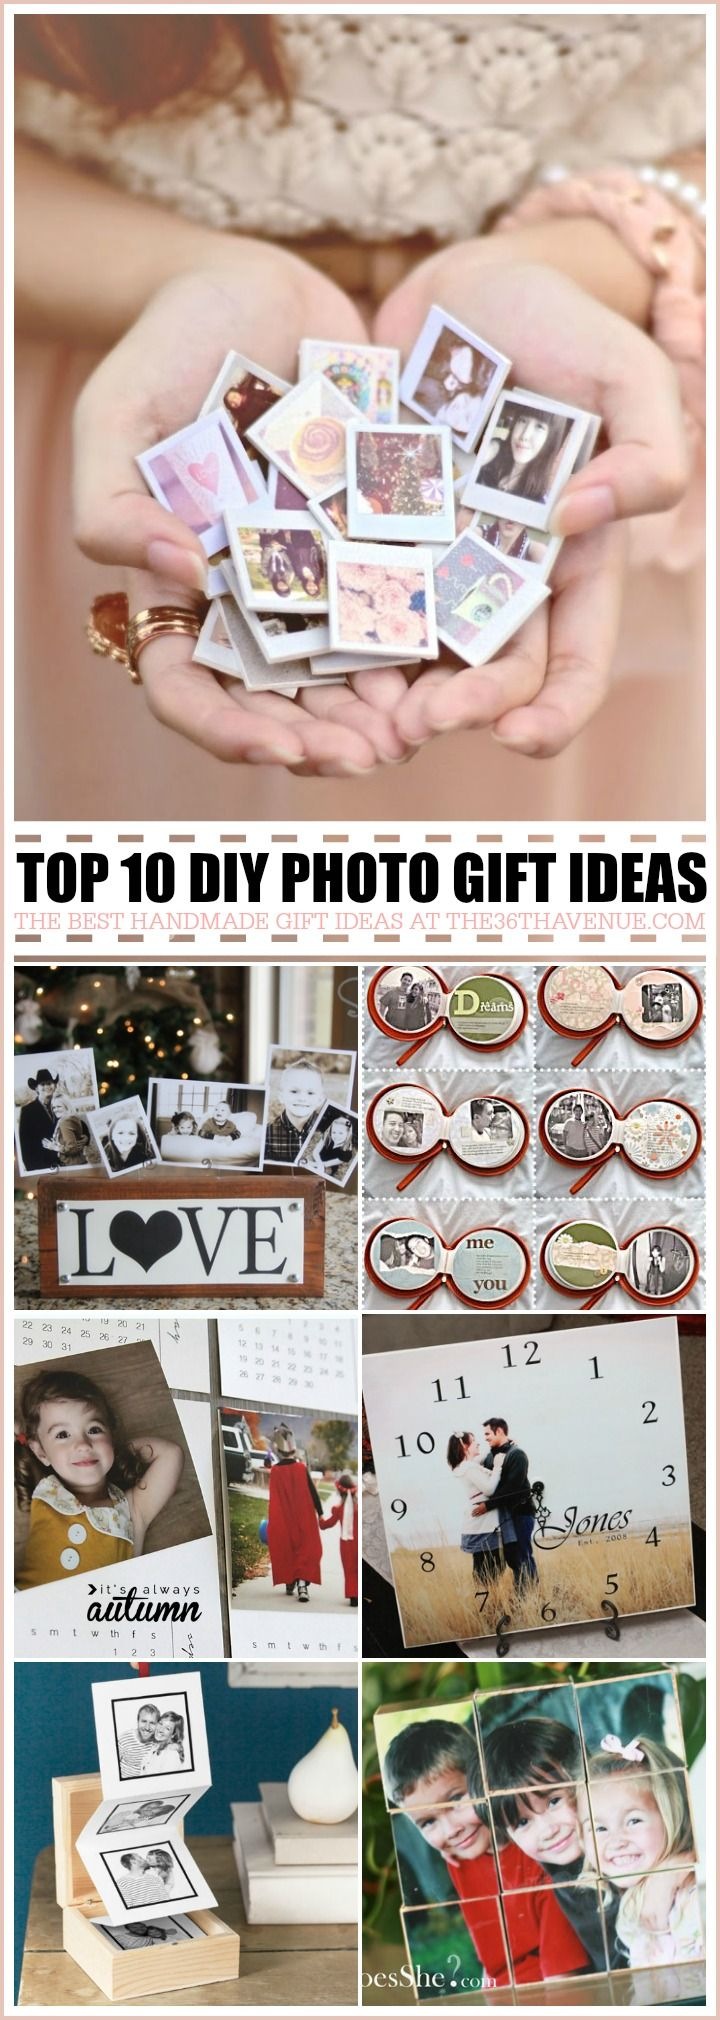 Handmade Gifts Photo Ideas at the36thavenue.com